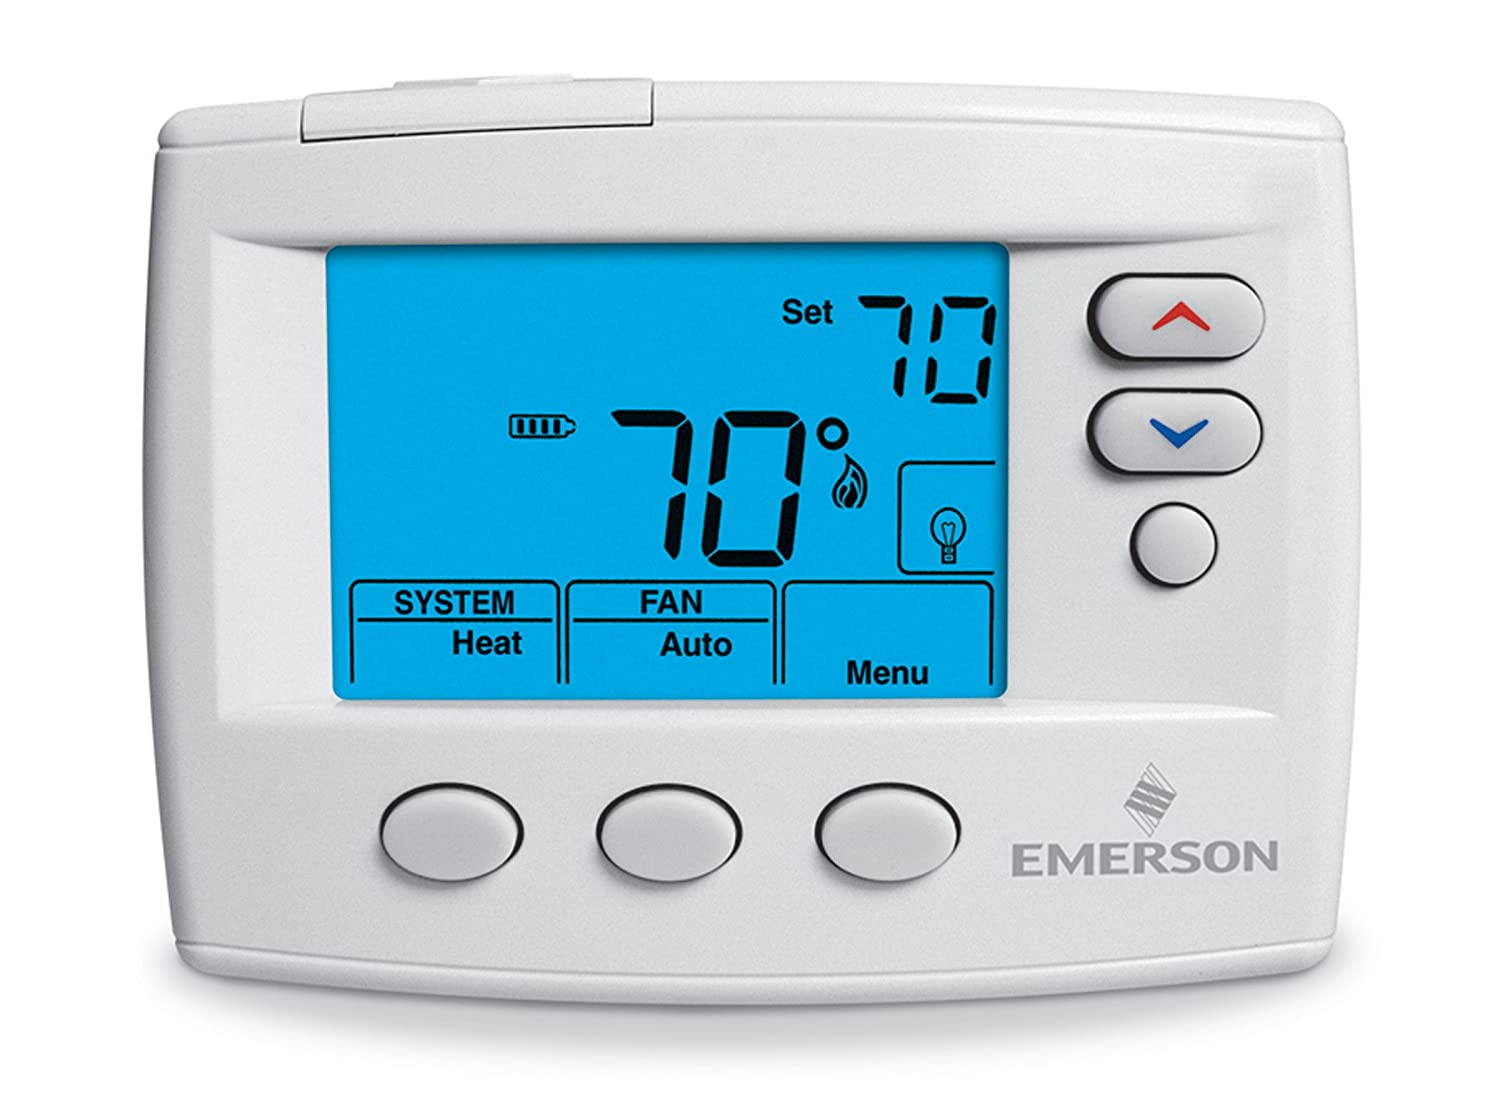 81w%2BvF7knGL._SL1500_ emerson 1f86 0471 single stage, non programmable thermostat, 24 wiring diagram emerson digital thermostat at gsmportal.co